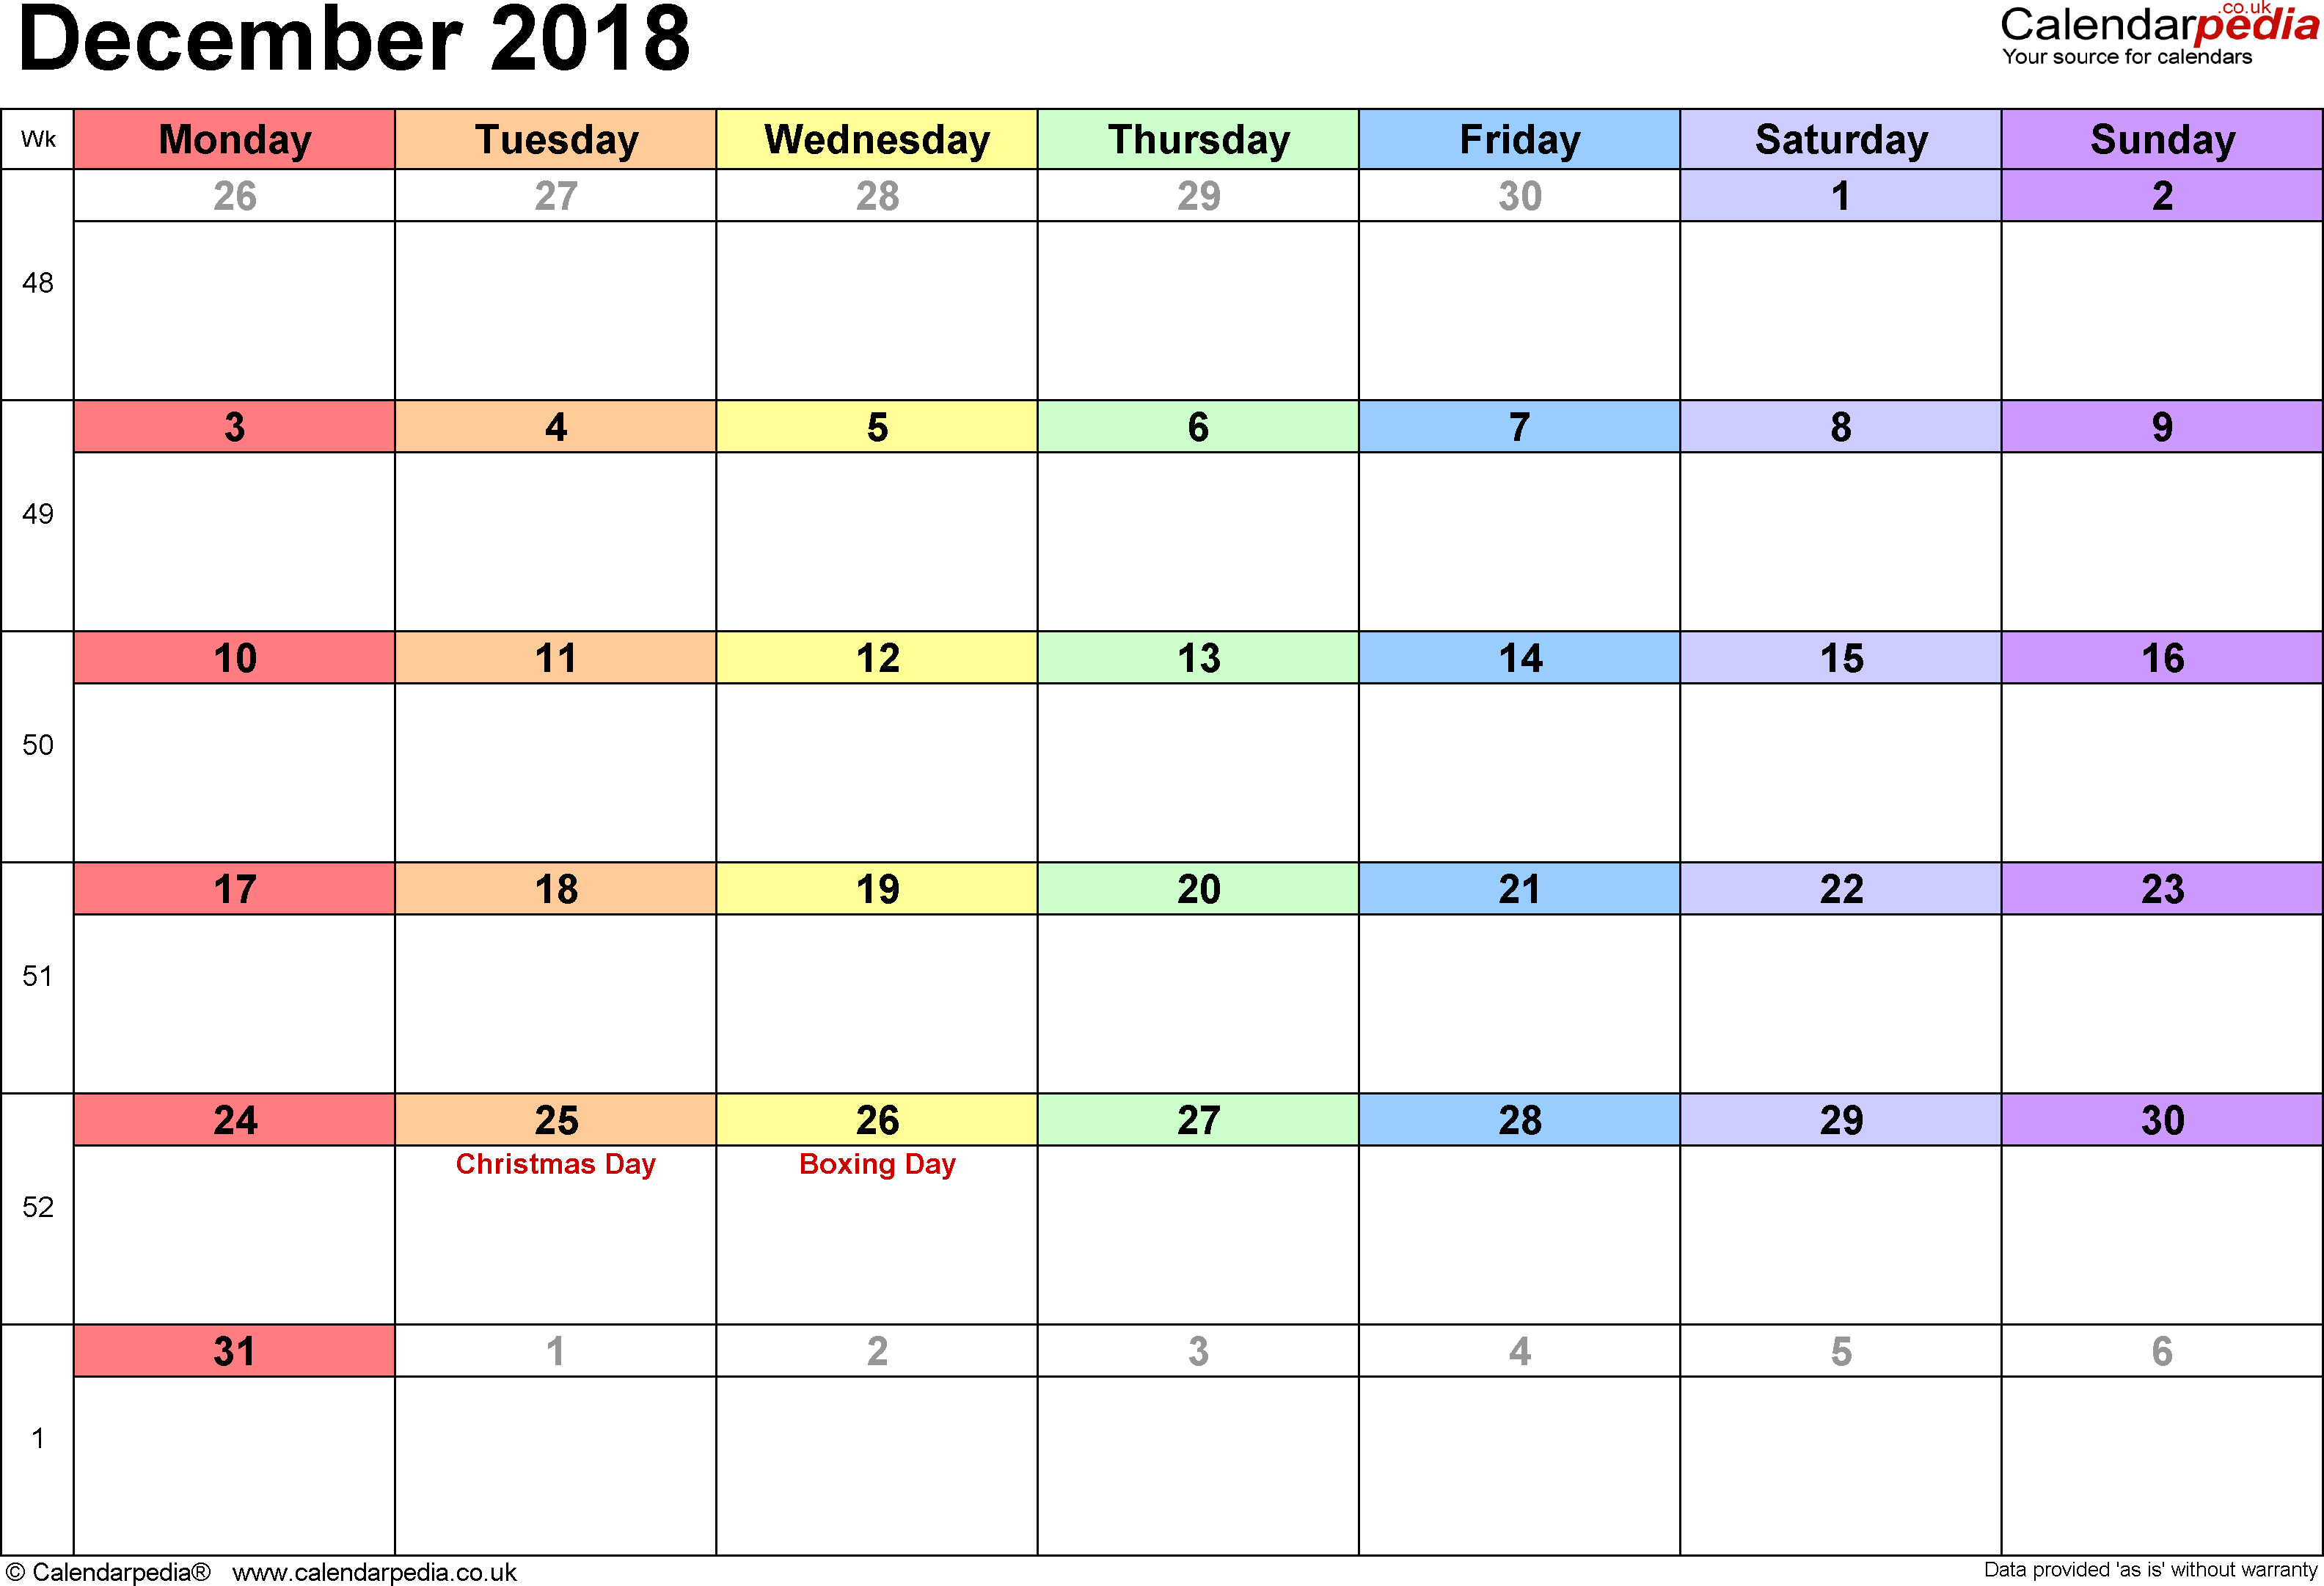 Calendar December 2018, landscape orientation, 1 page, with UK bank holidays and week numbers